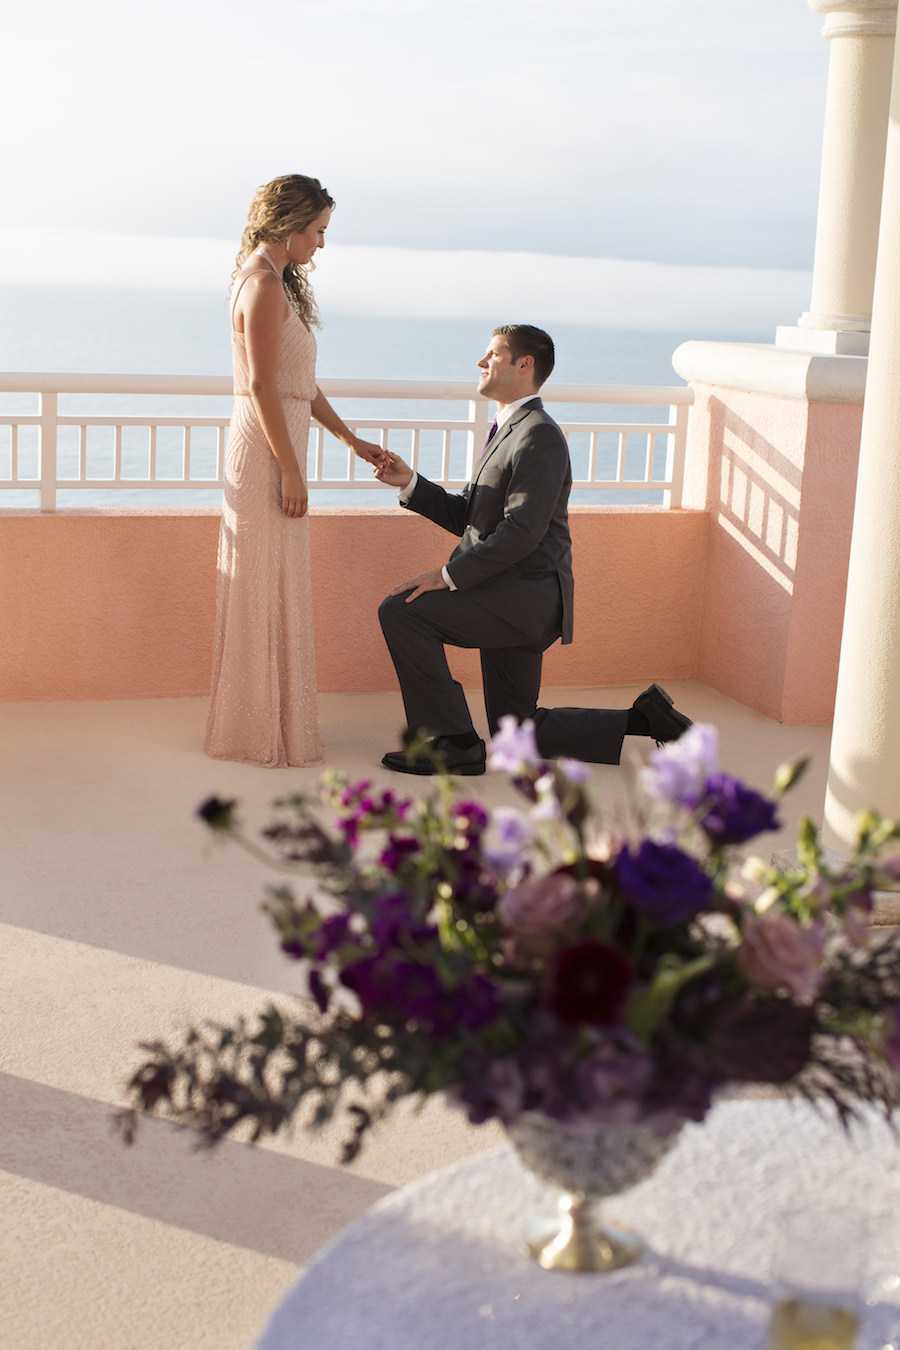 Groom on Bended Knee | Surprise Engagement Proposal at the Hyatt Regency Clearwater Beach | Clearwater Wedding Photographer Djamel Photography